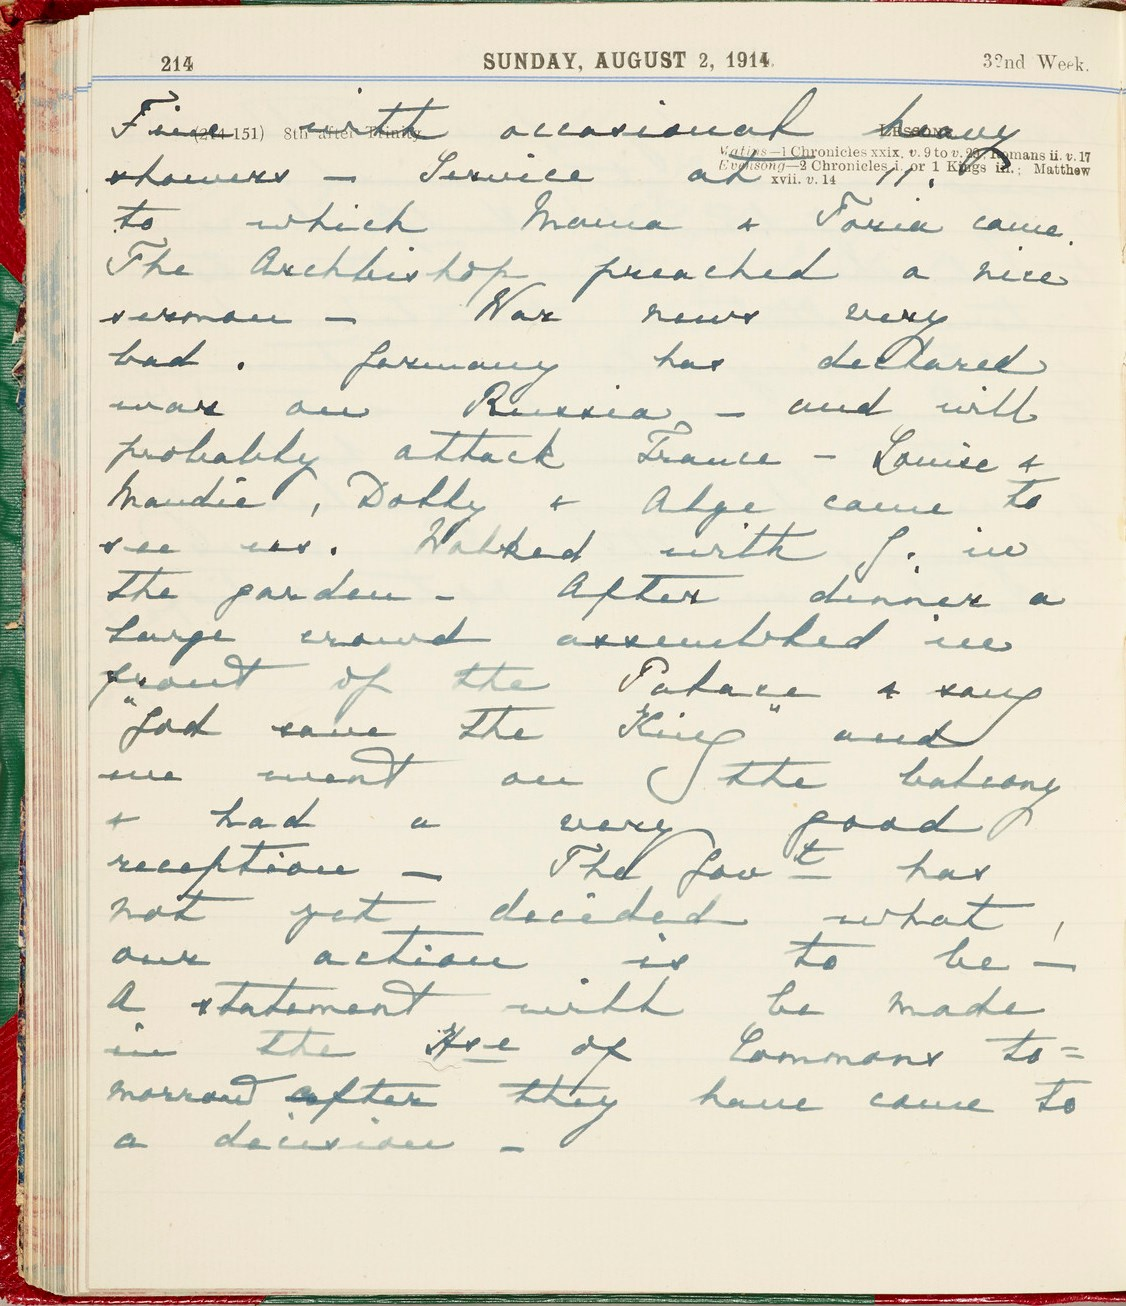 Queen Mary's Diary entry 2 August 1914